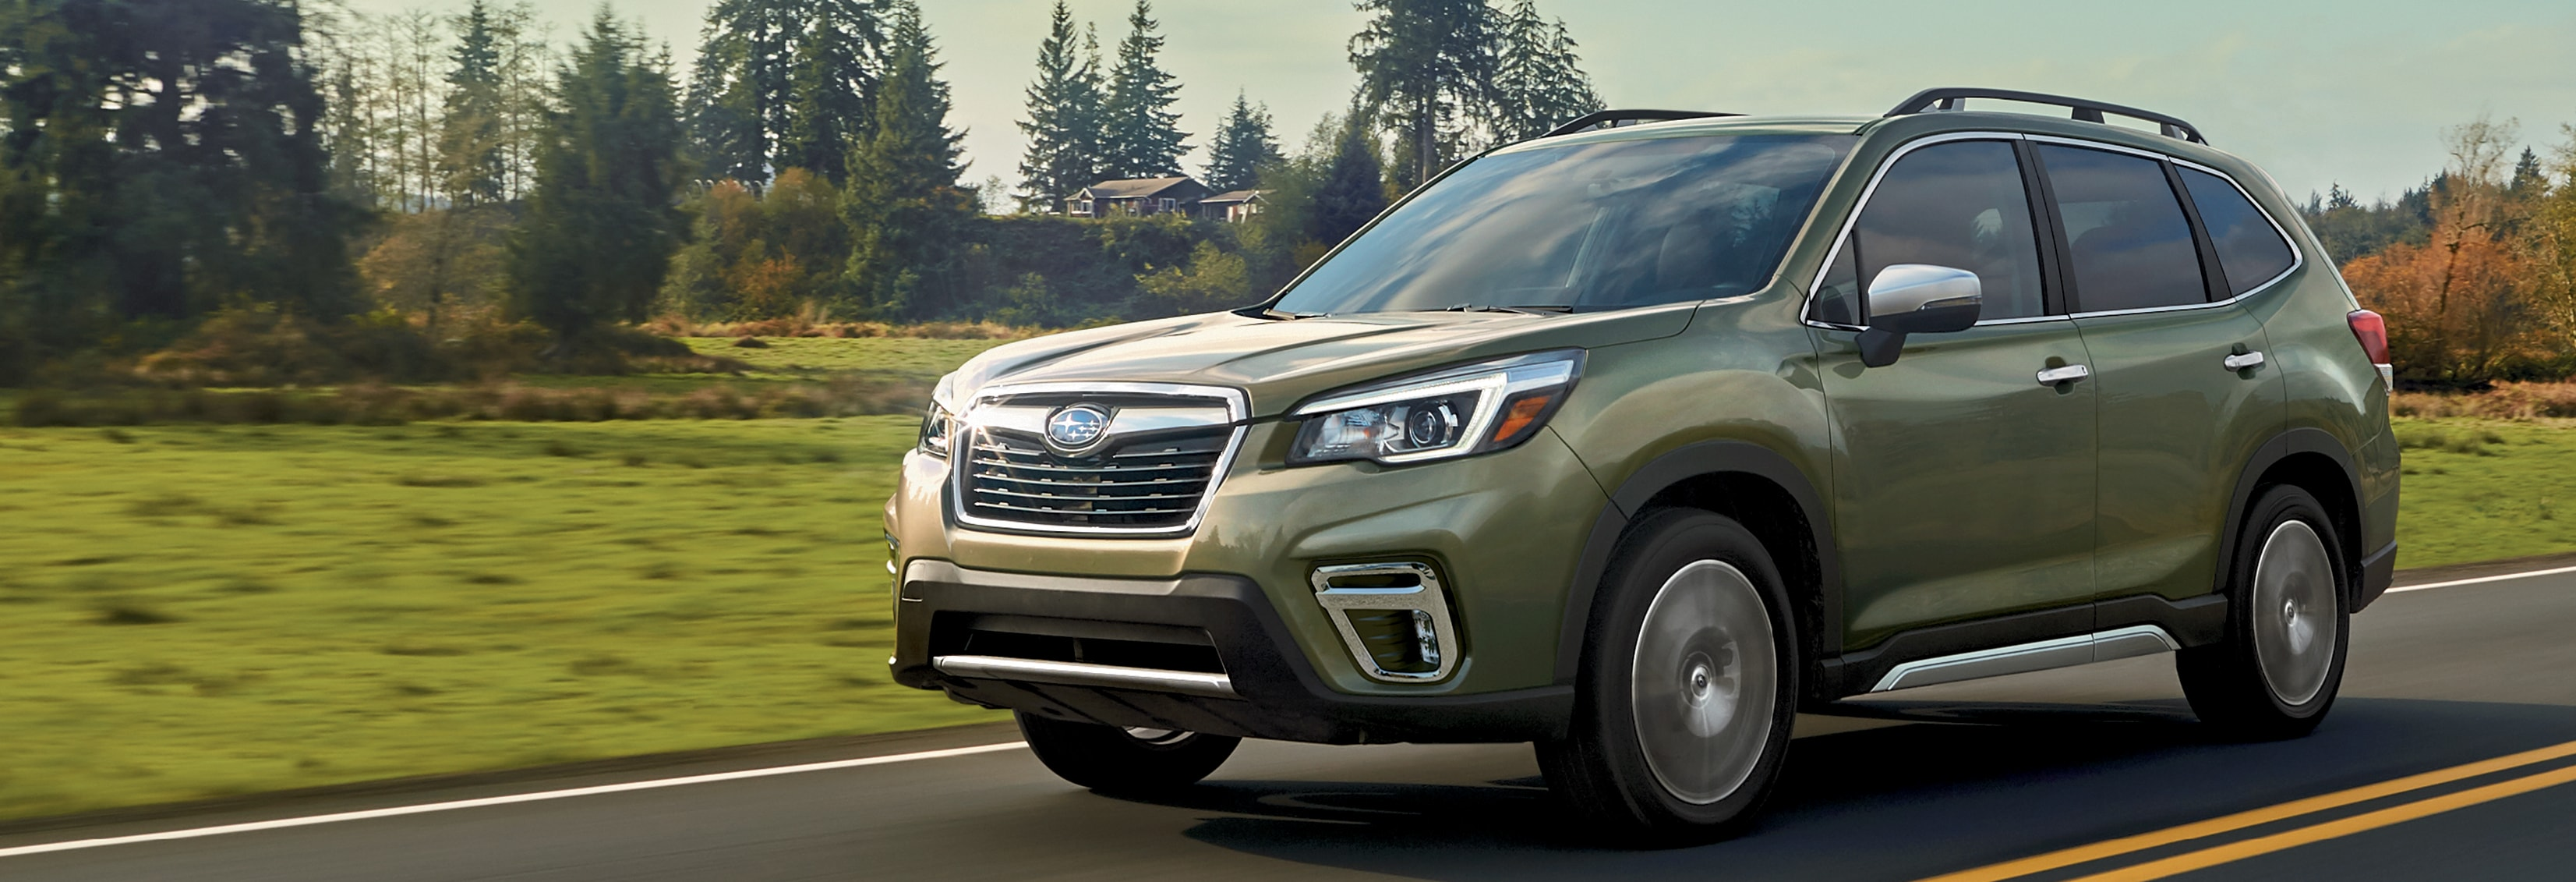 Subaru Forester Exterior Vehicle Features